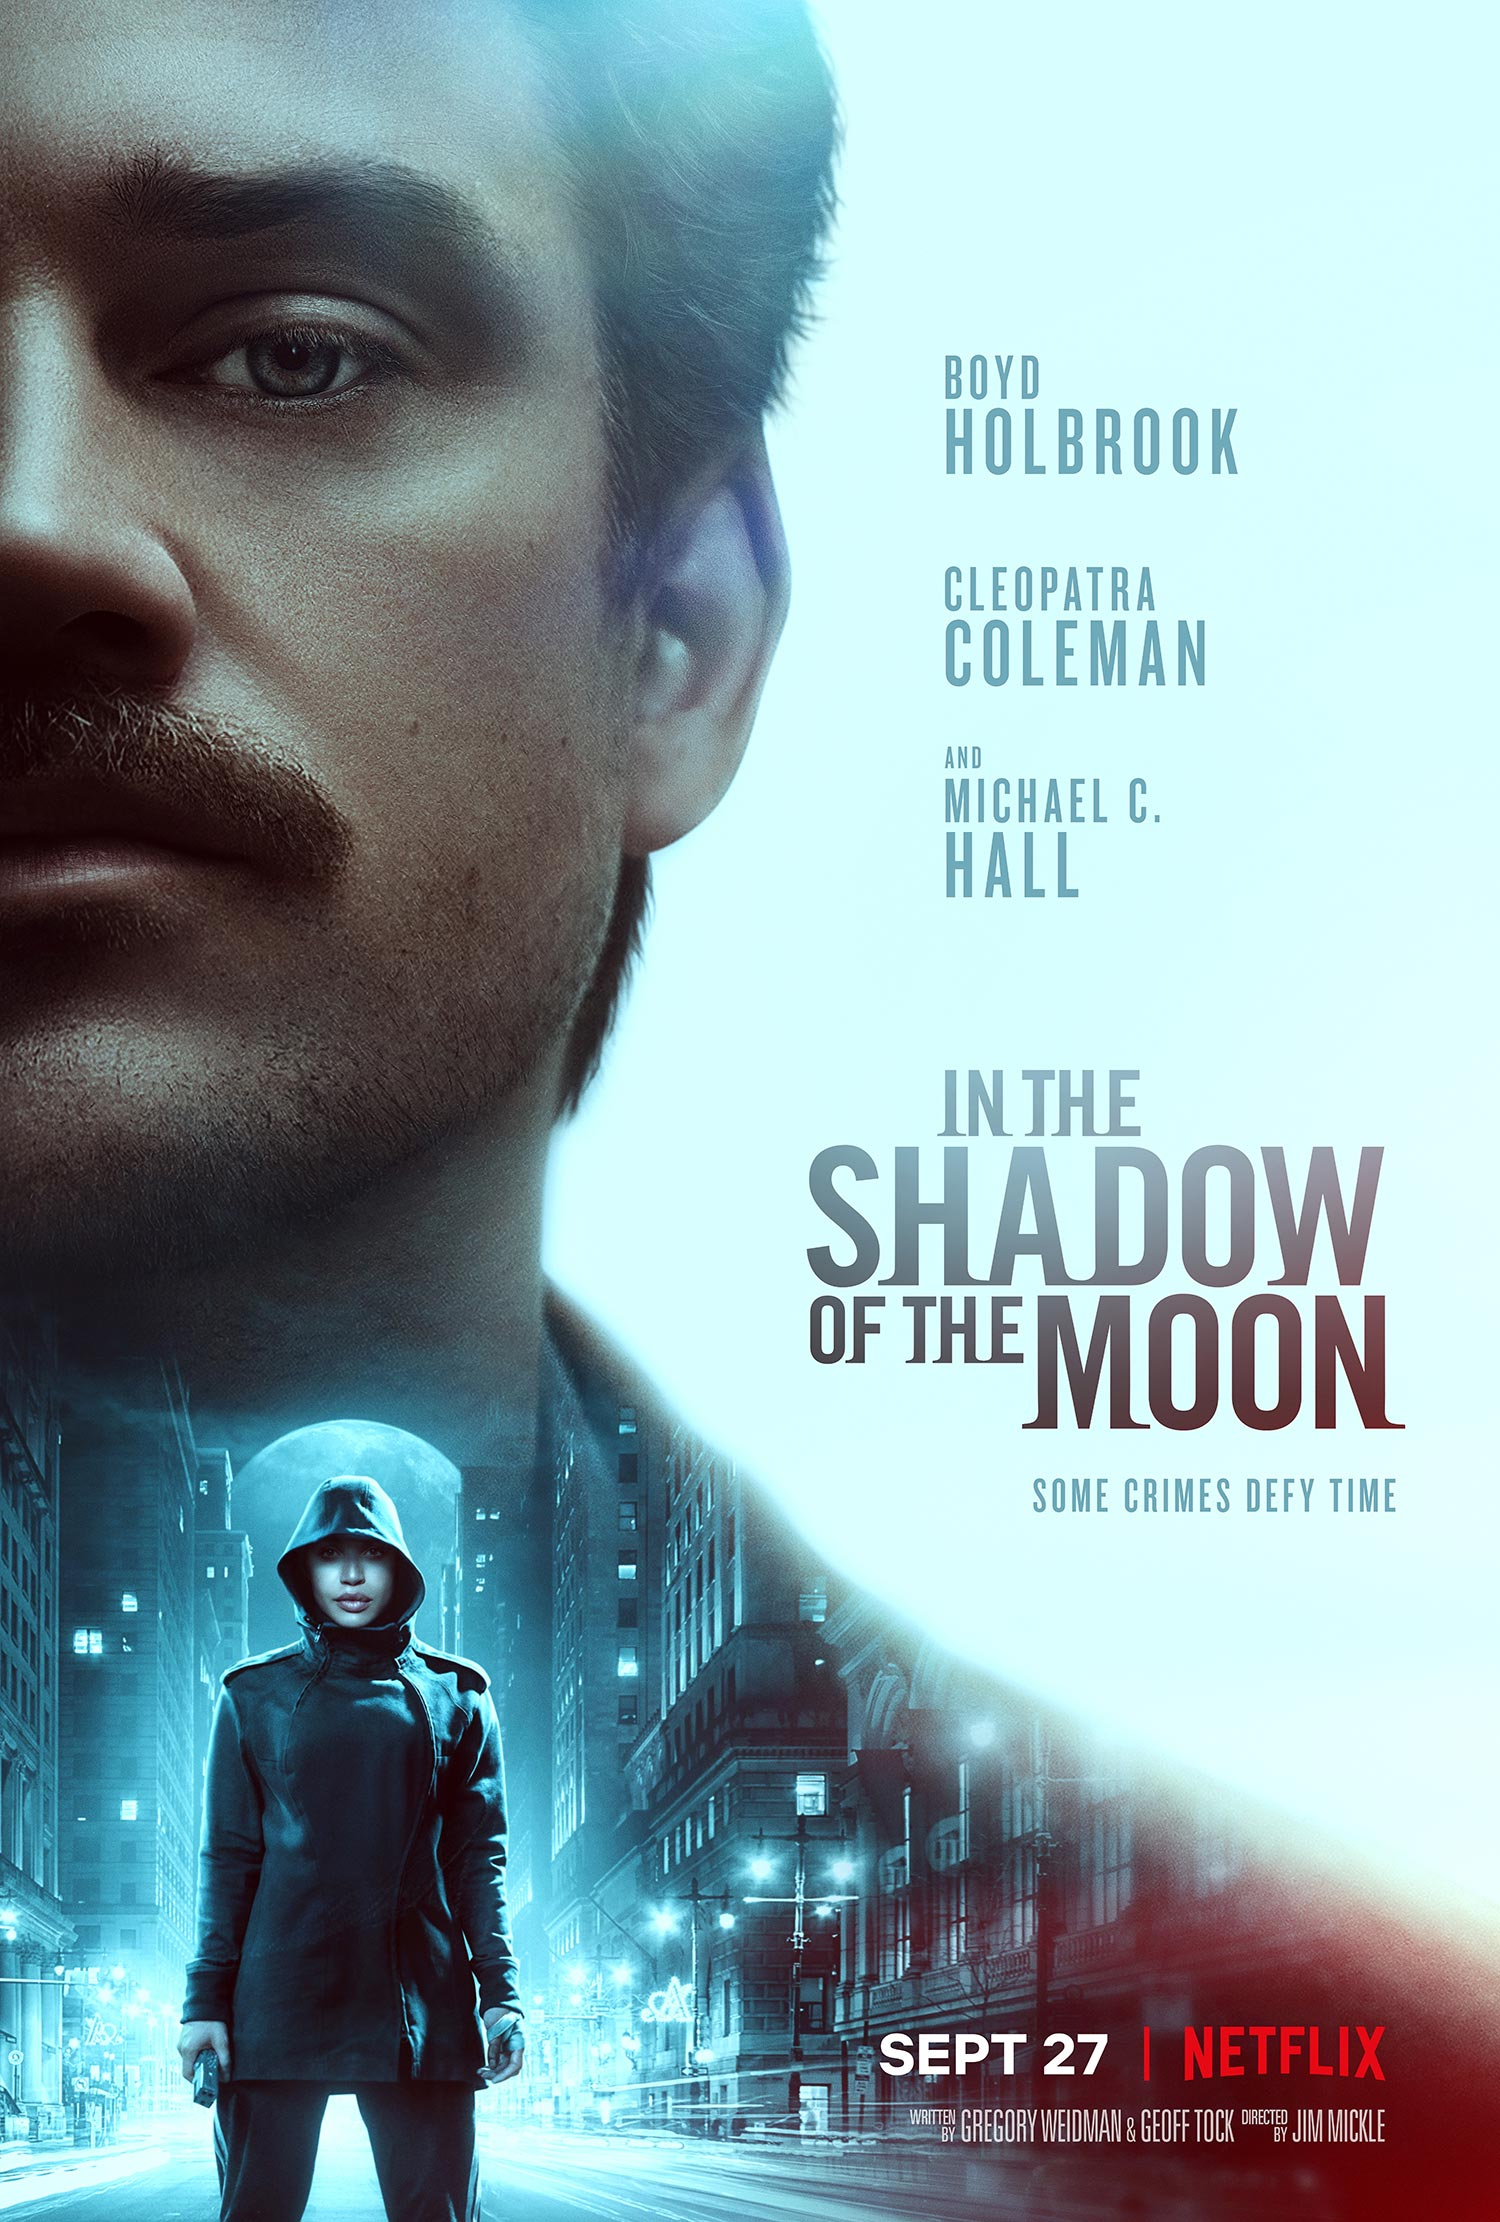 In The Shadow Of The Moon Trailer